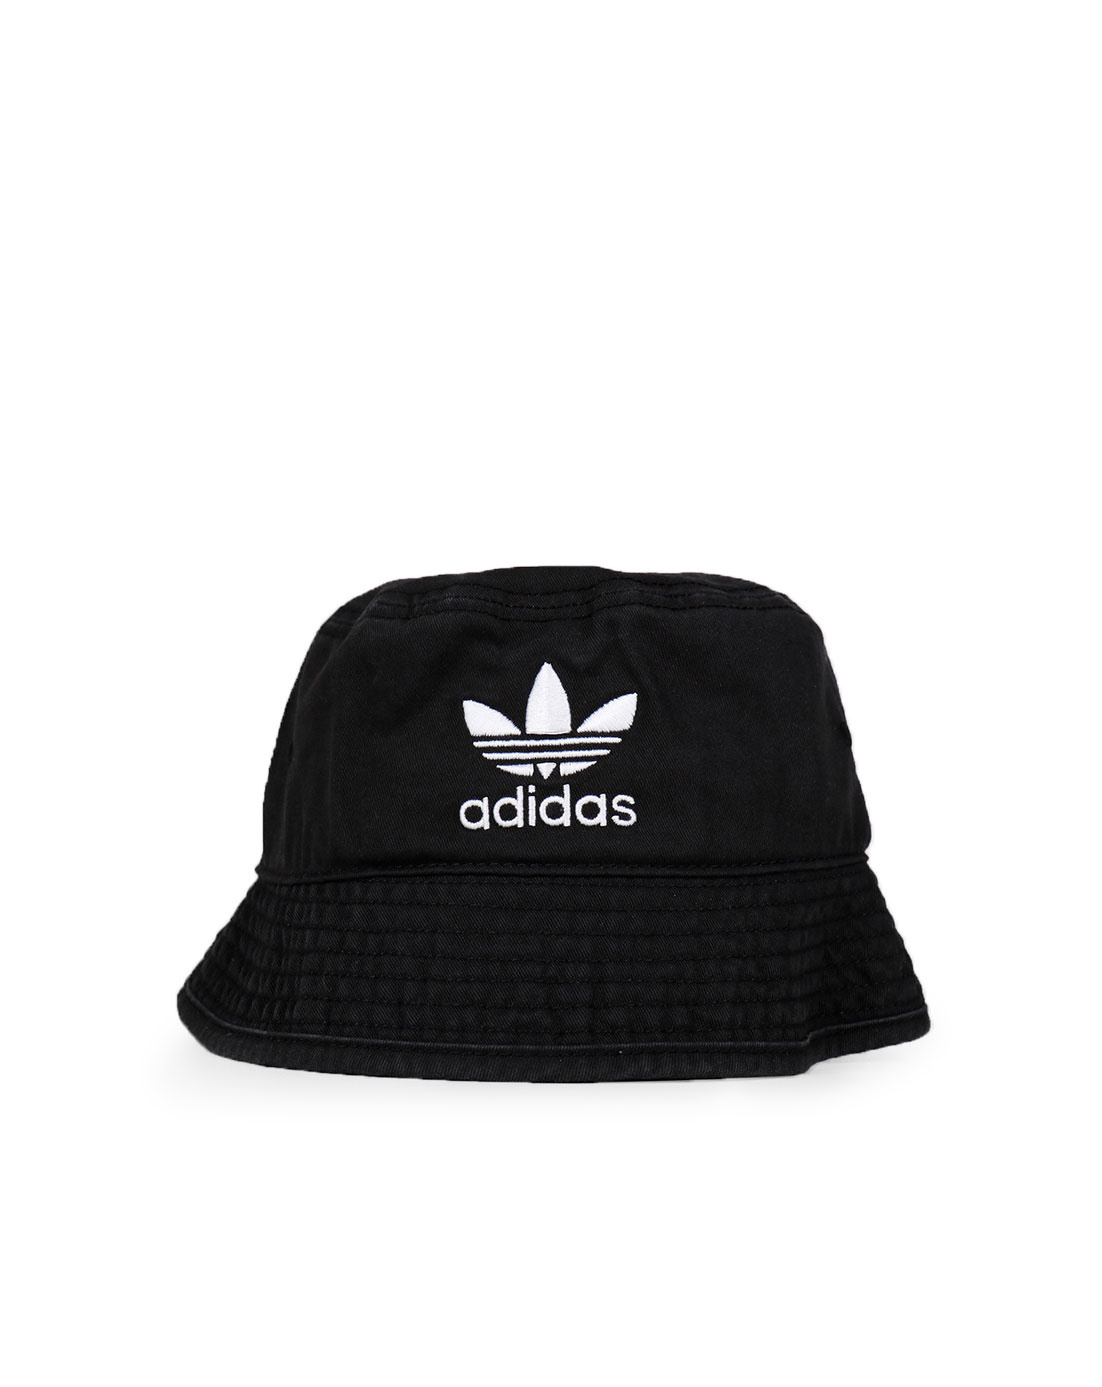 adidas Bucket Hat Ac Black White DV0863